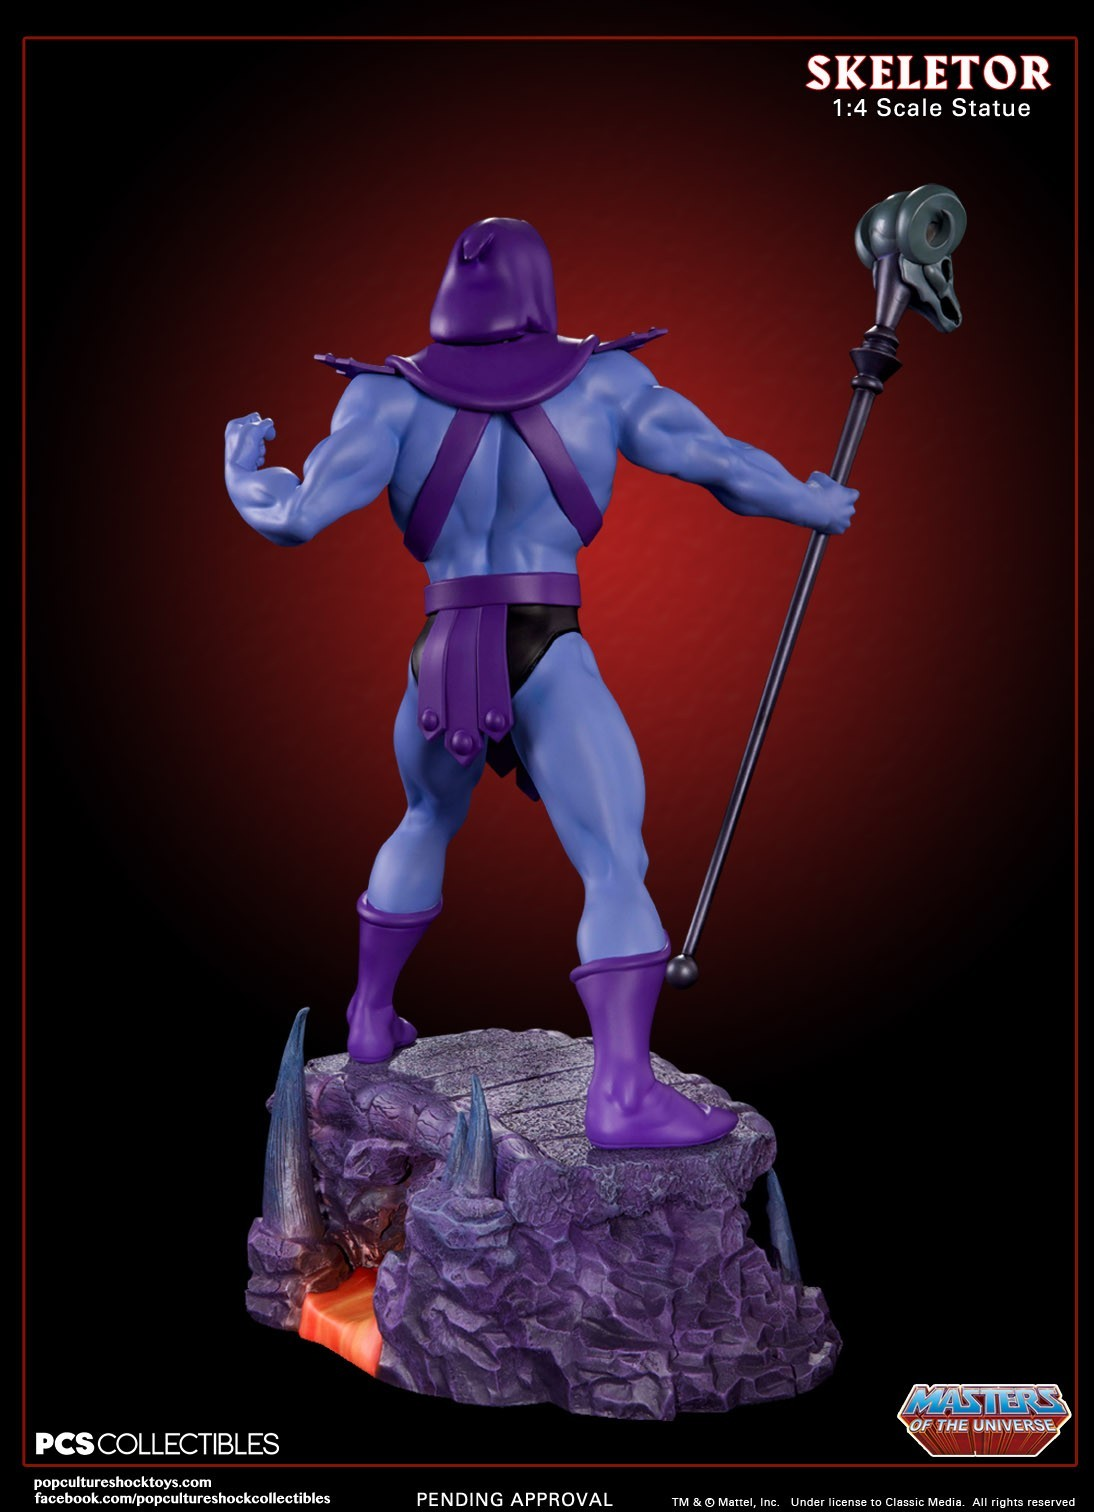 Alejandro pereira skeletor media l 1